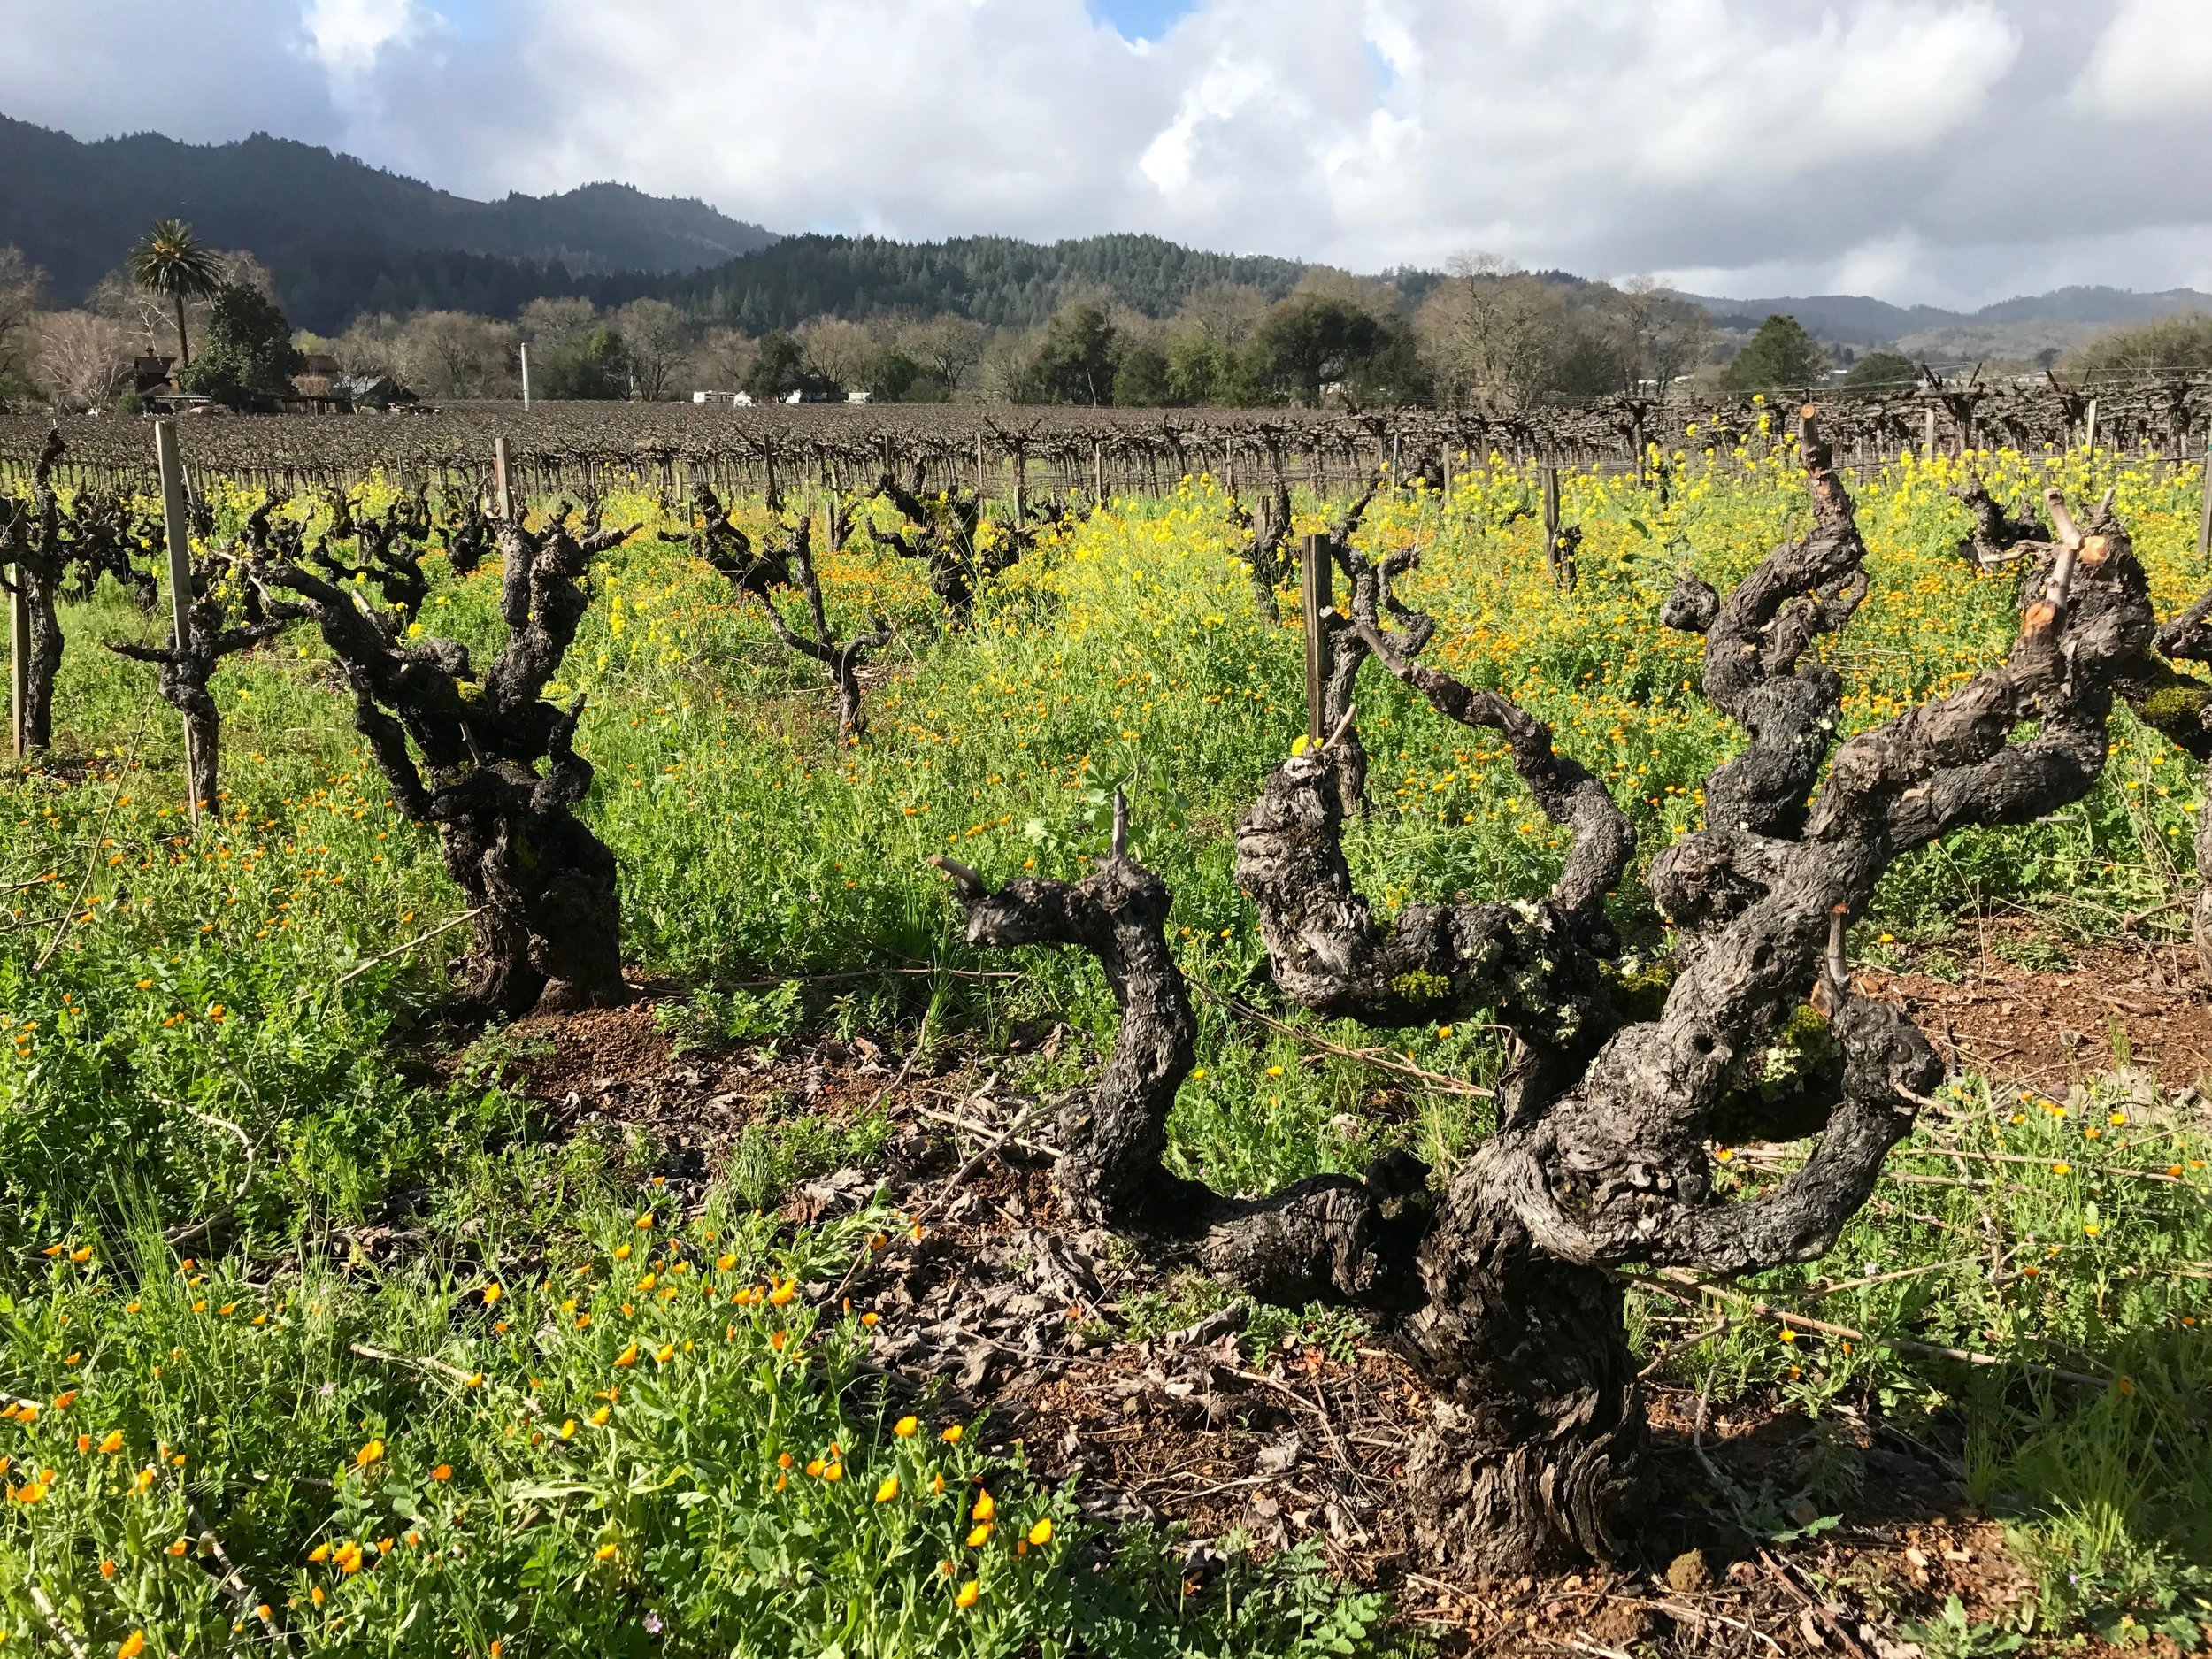 A winter view shows the vines in all their gnarly glory